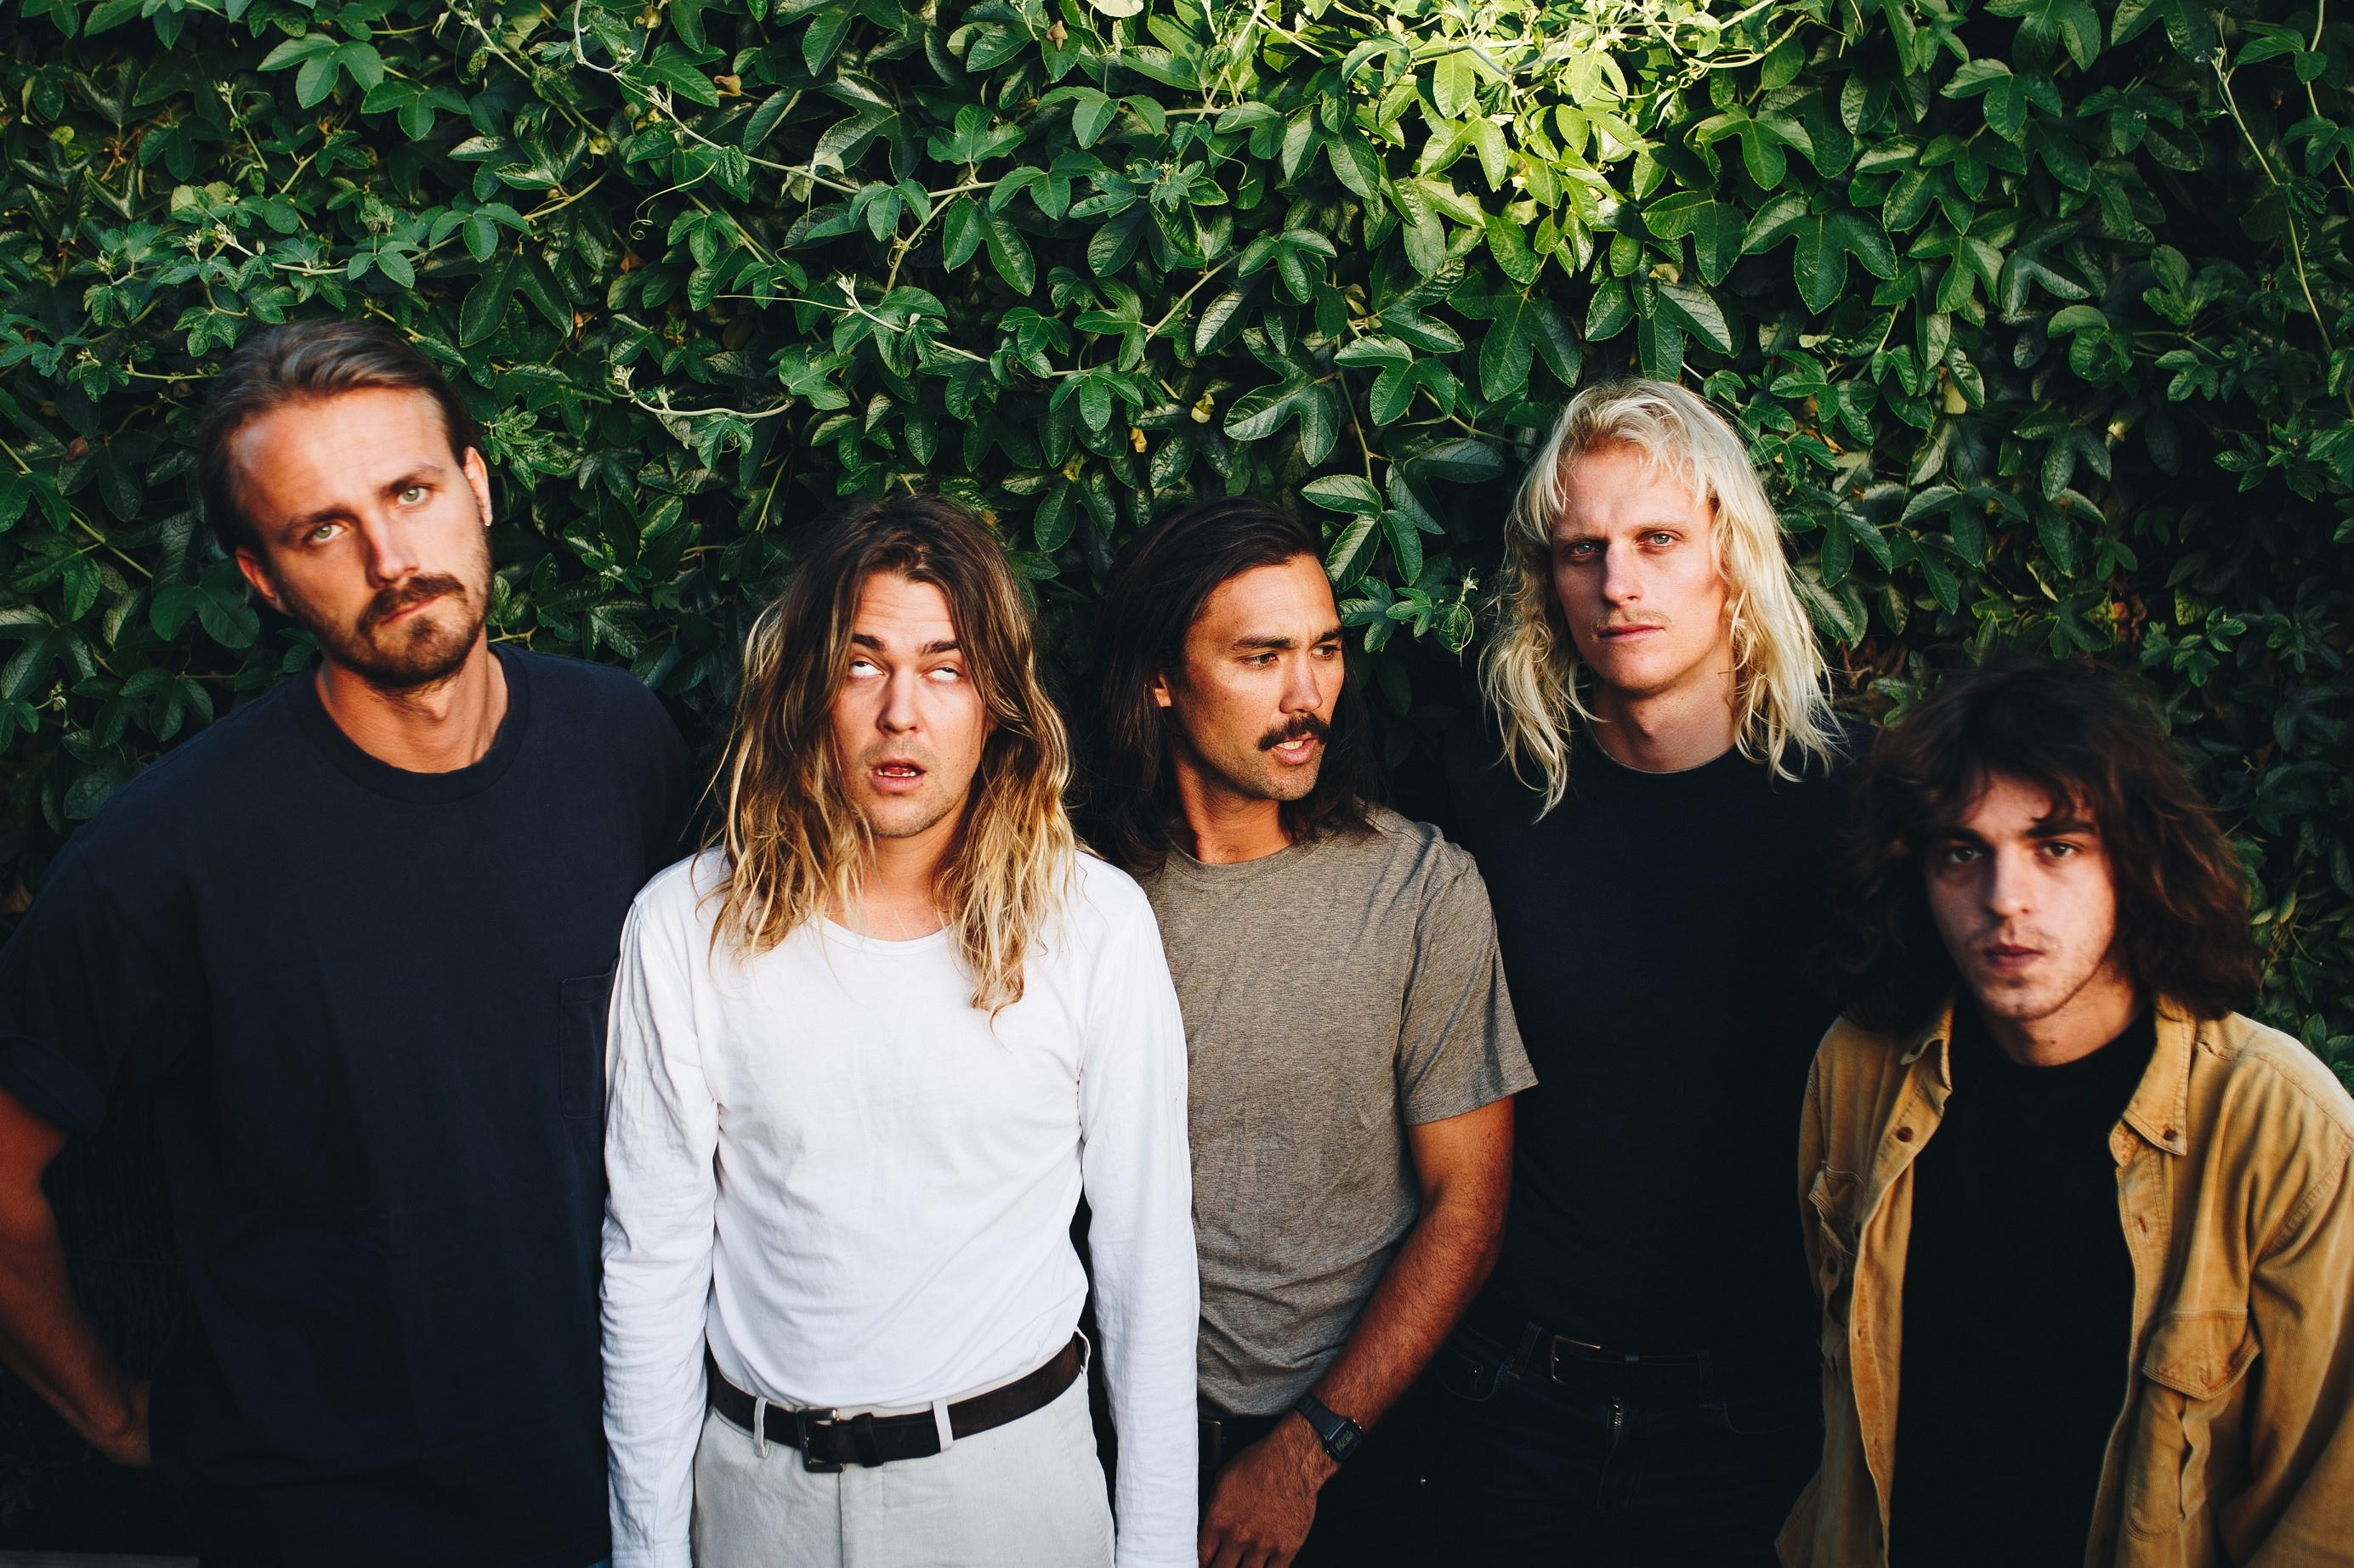 THE BELLIGERENTS RELEASE NEW SINGLE 'FLASH', DEBUT ALBUM SCIENCE FICTION TO BE RELEASED SEPTEMBER 8TH